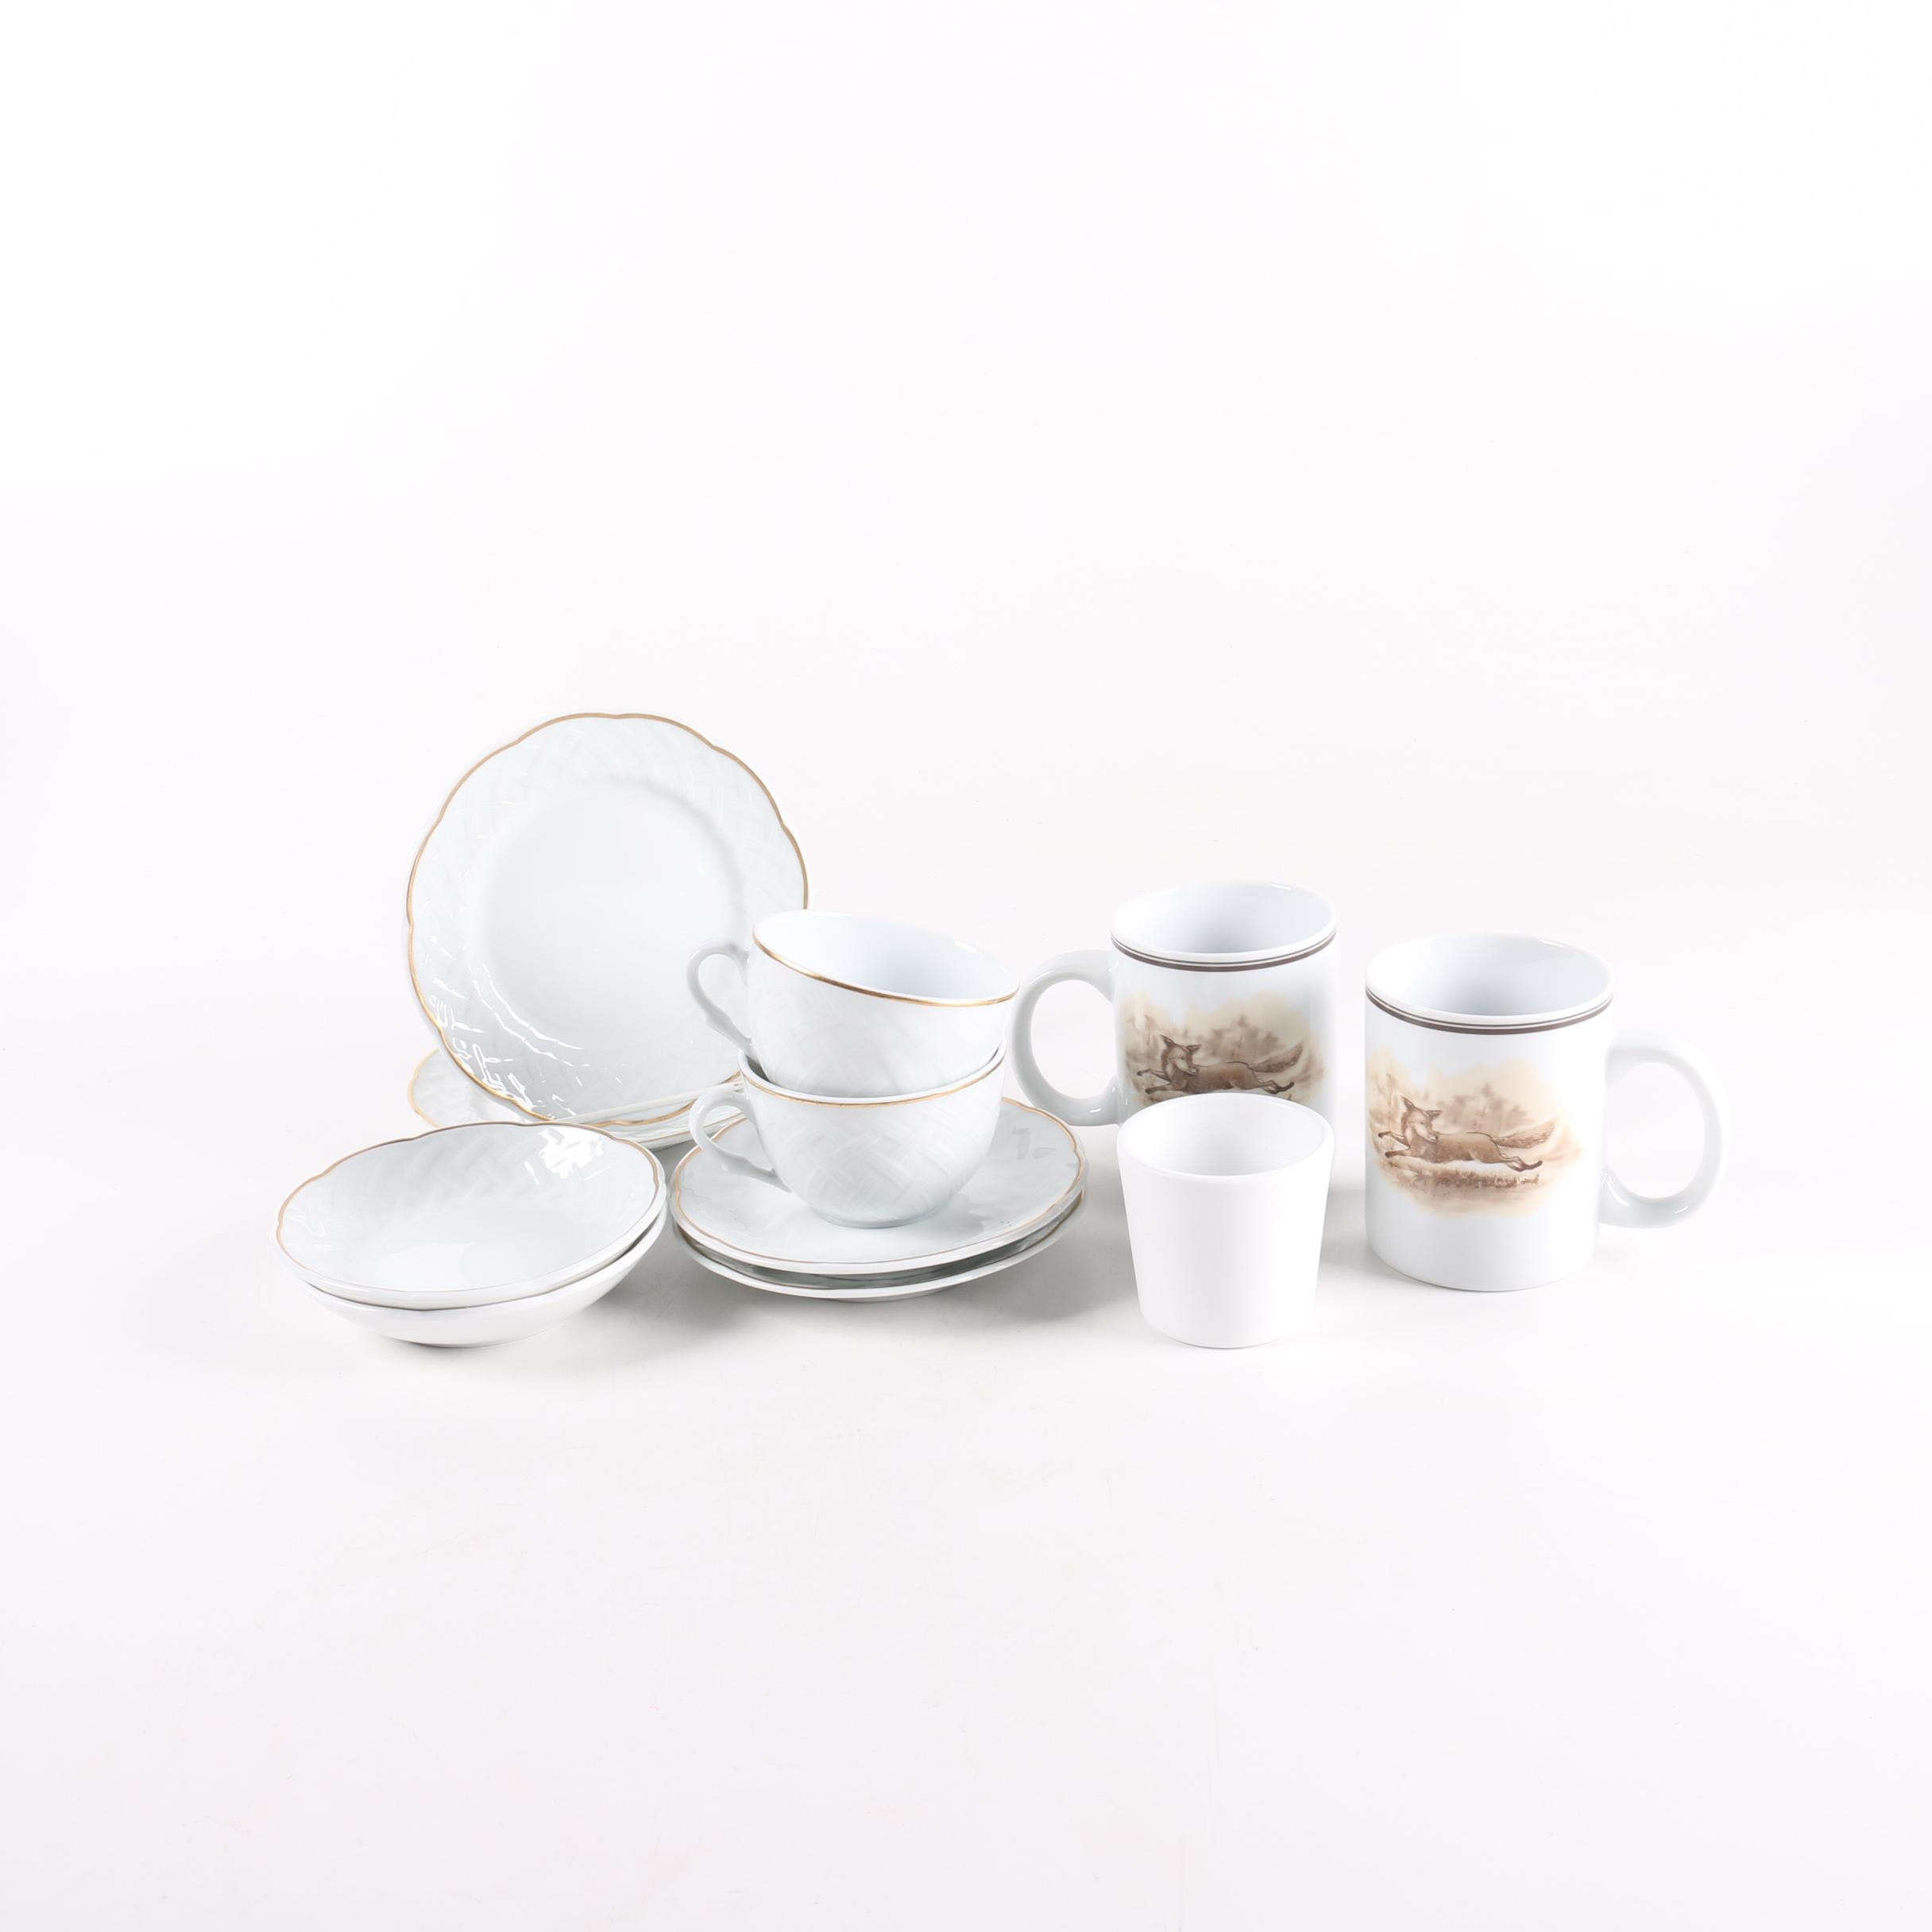 Bernardaud Limoges  Vannerie  Tableware and C. E. Corey   ...  sc 1 st  EBTH.com & Bernardaud Limoges